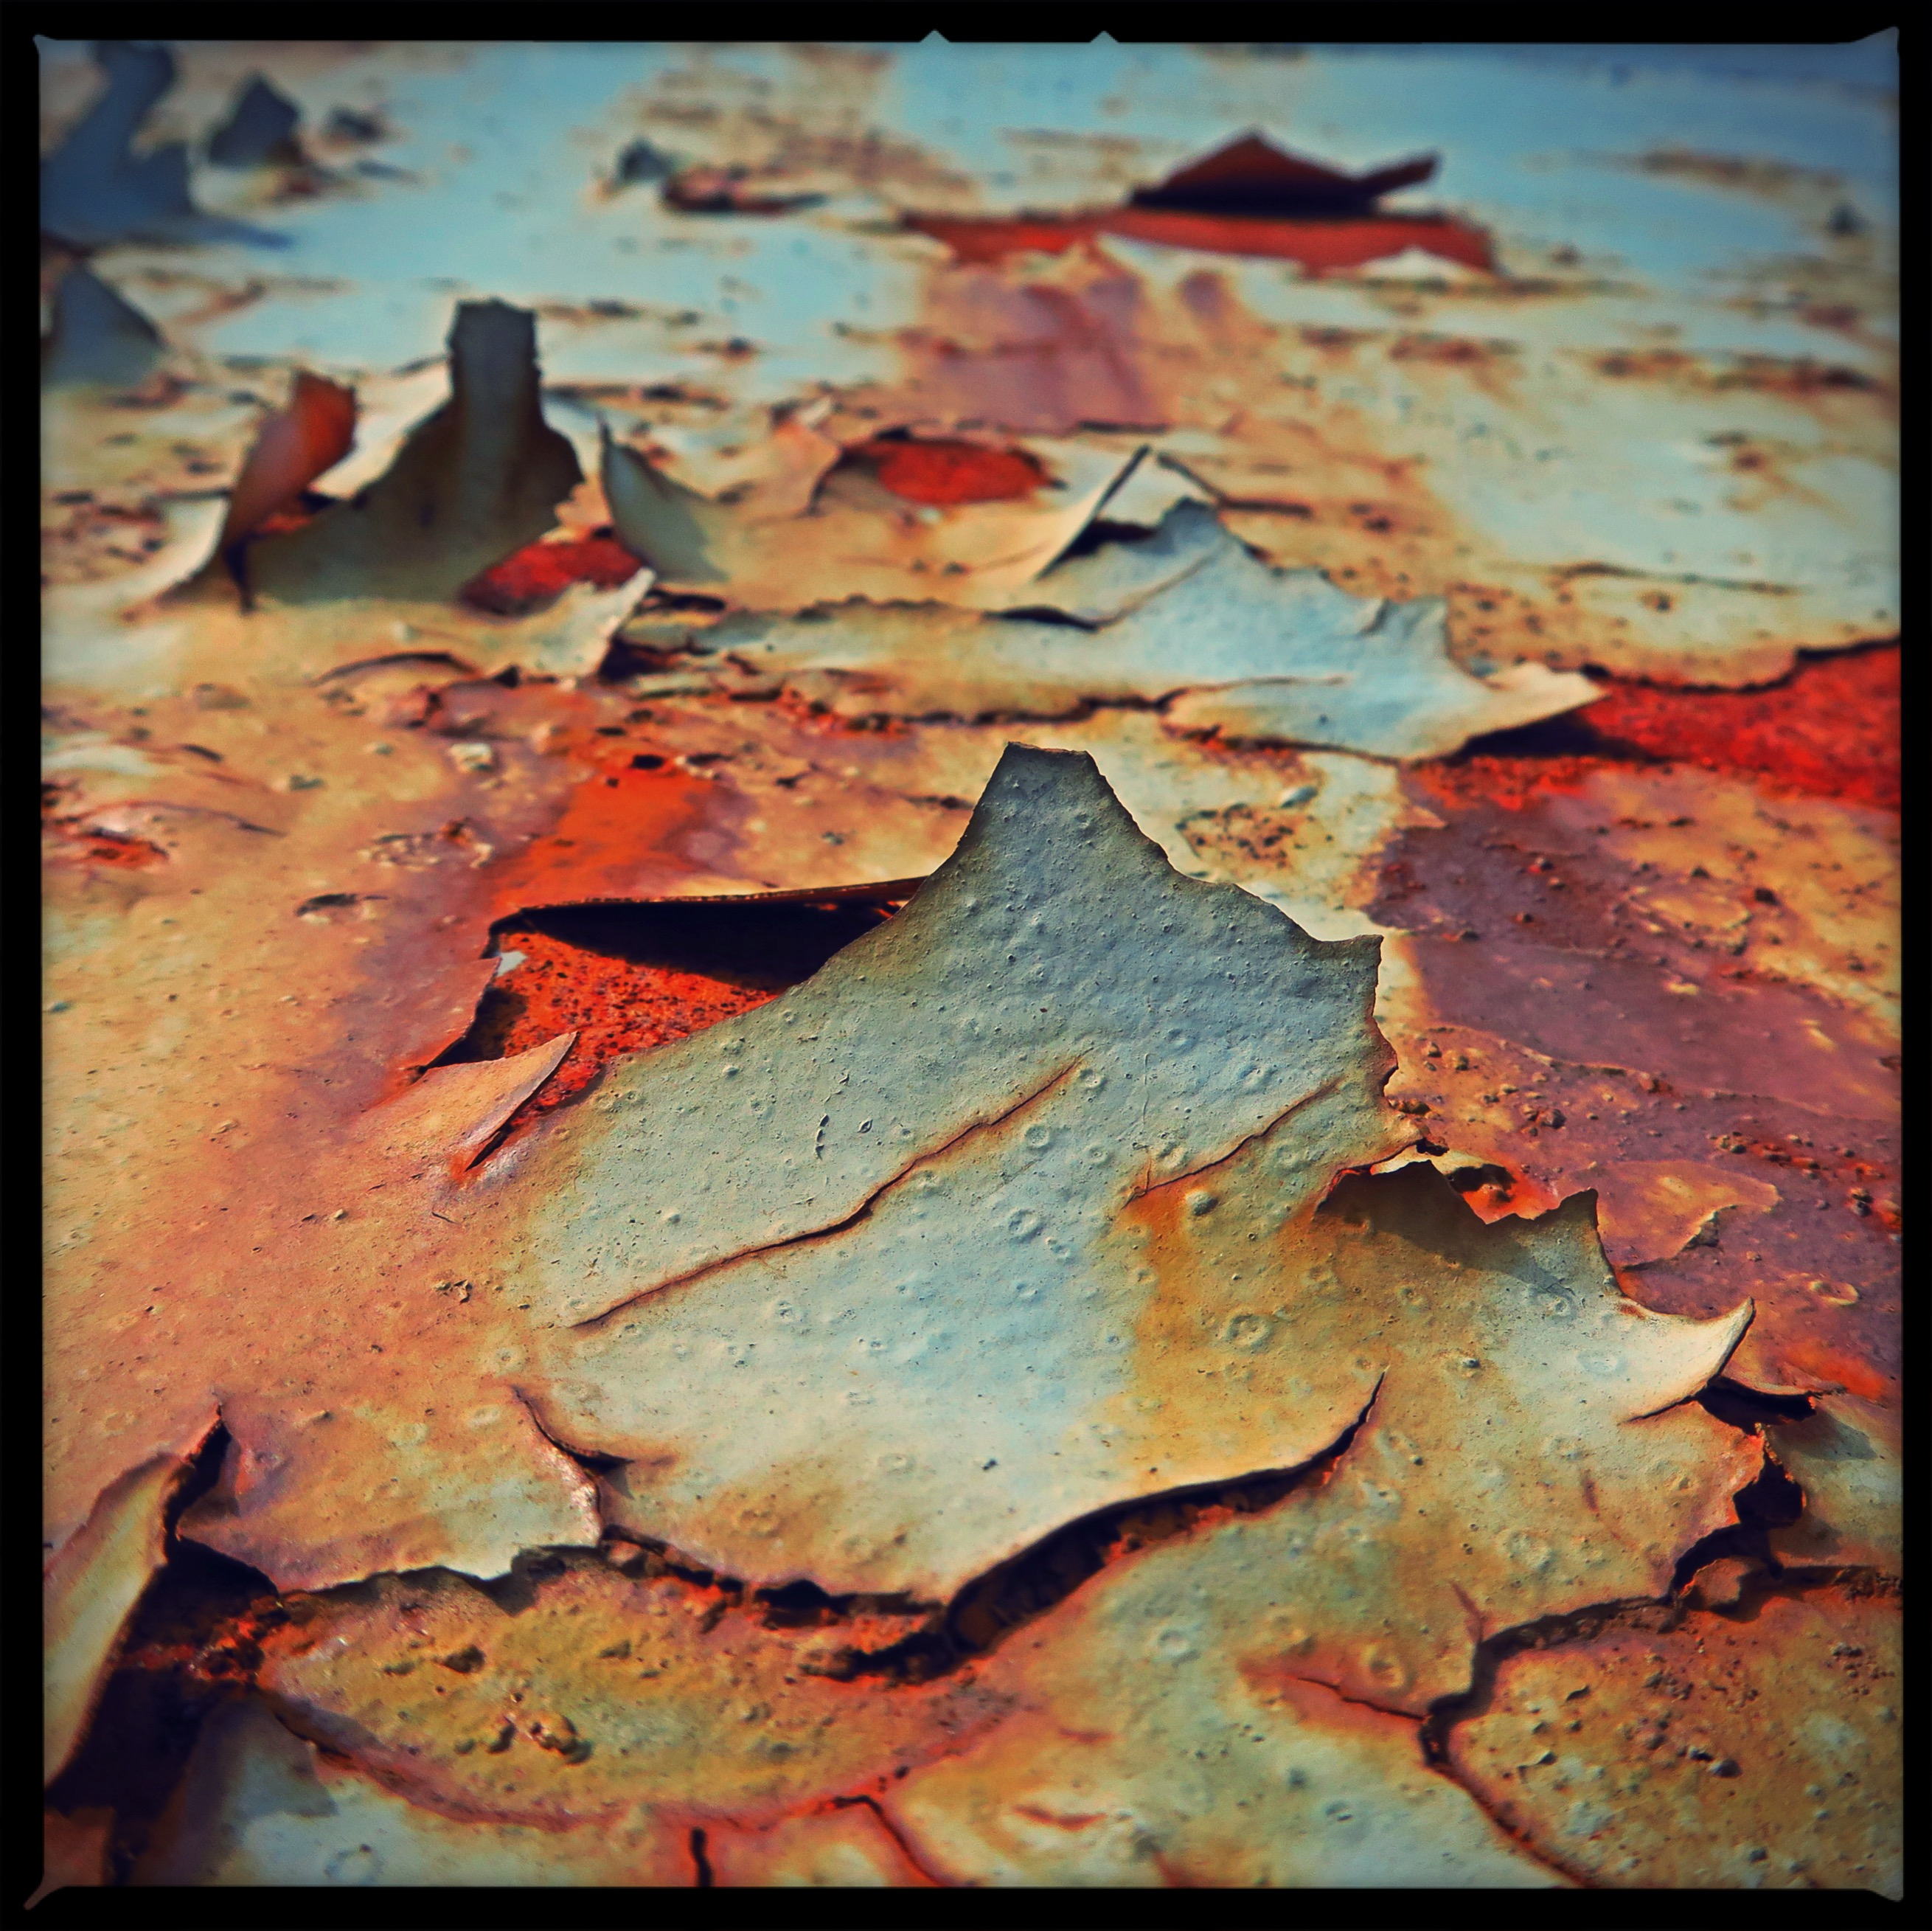 Rust at Dawn 2/3